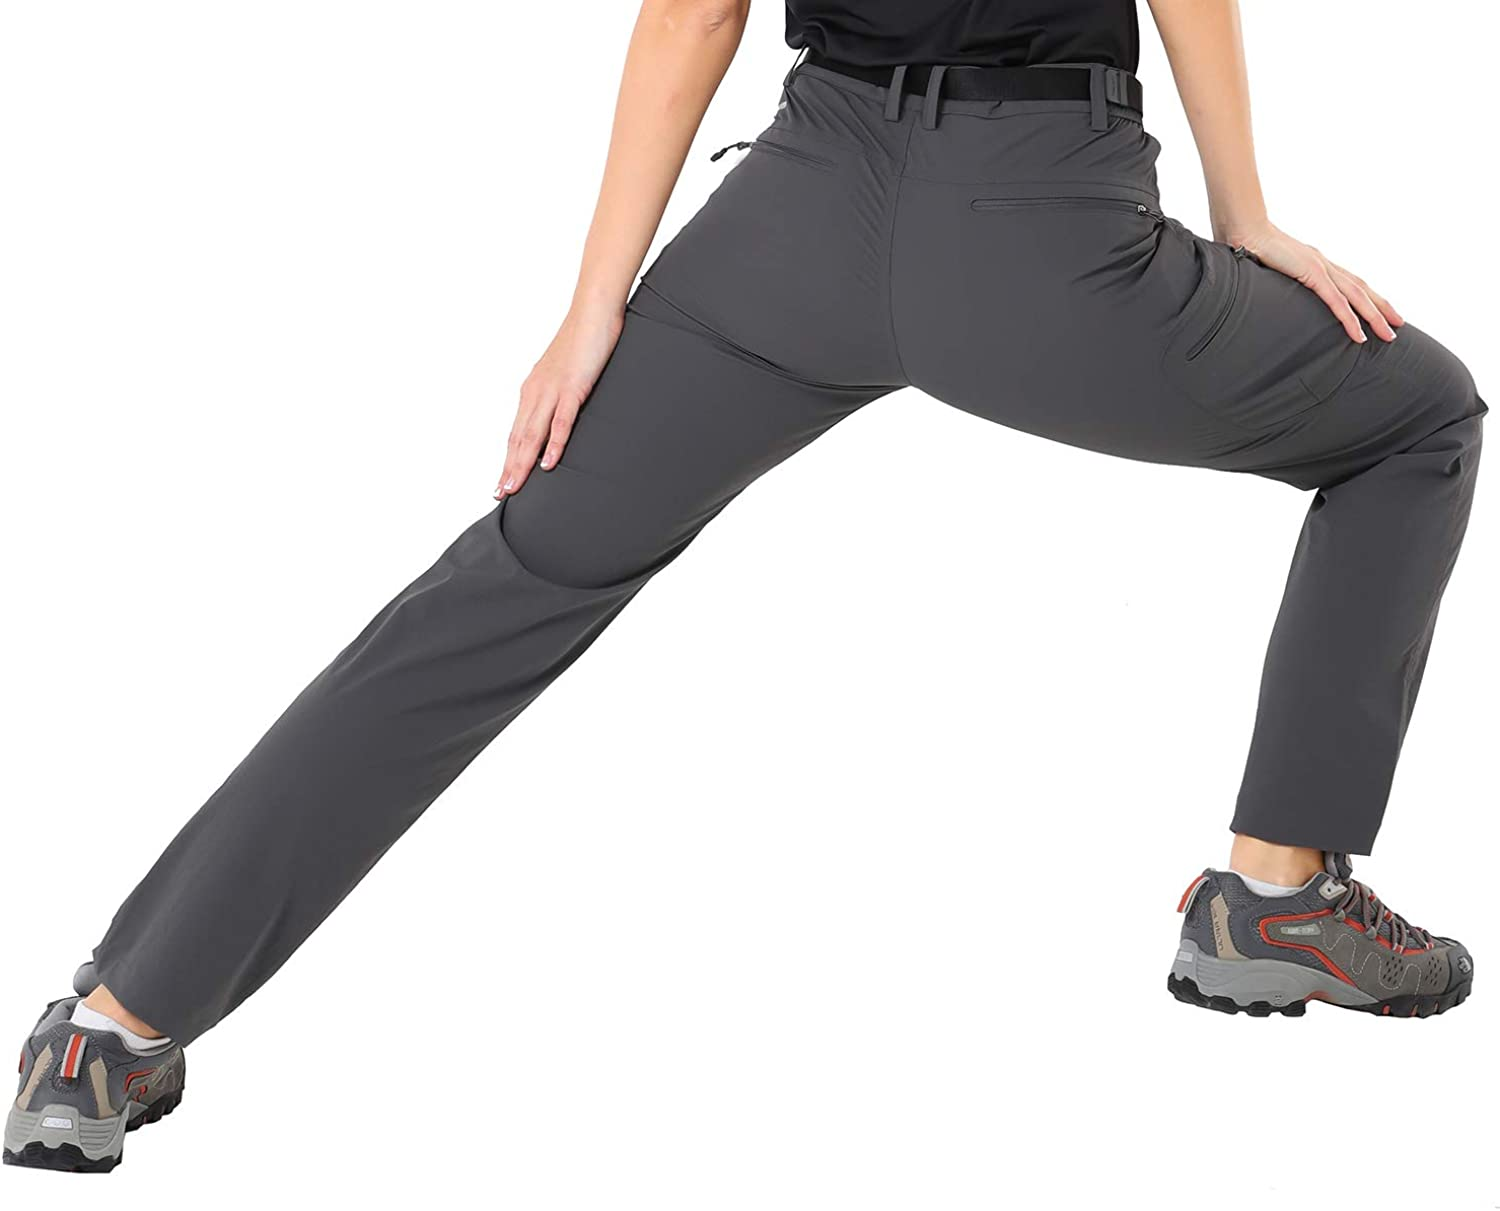 5 Zip Pockets MIER Womens Quick Dry Hiking Pants Lightweight Stretch Cargo Tactical Pants Water Resistant